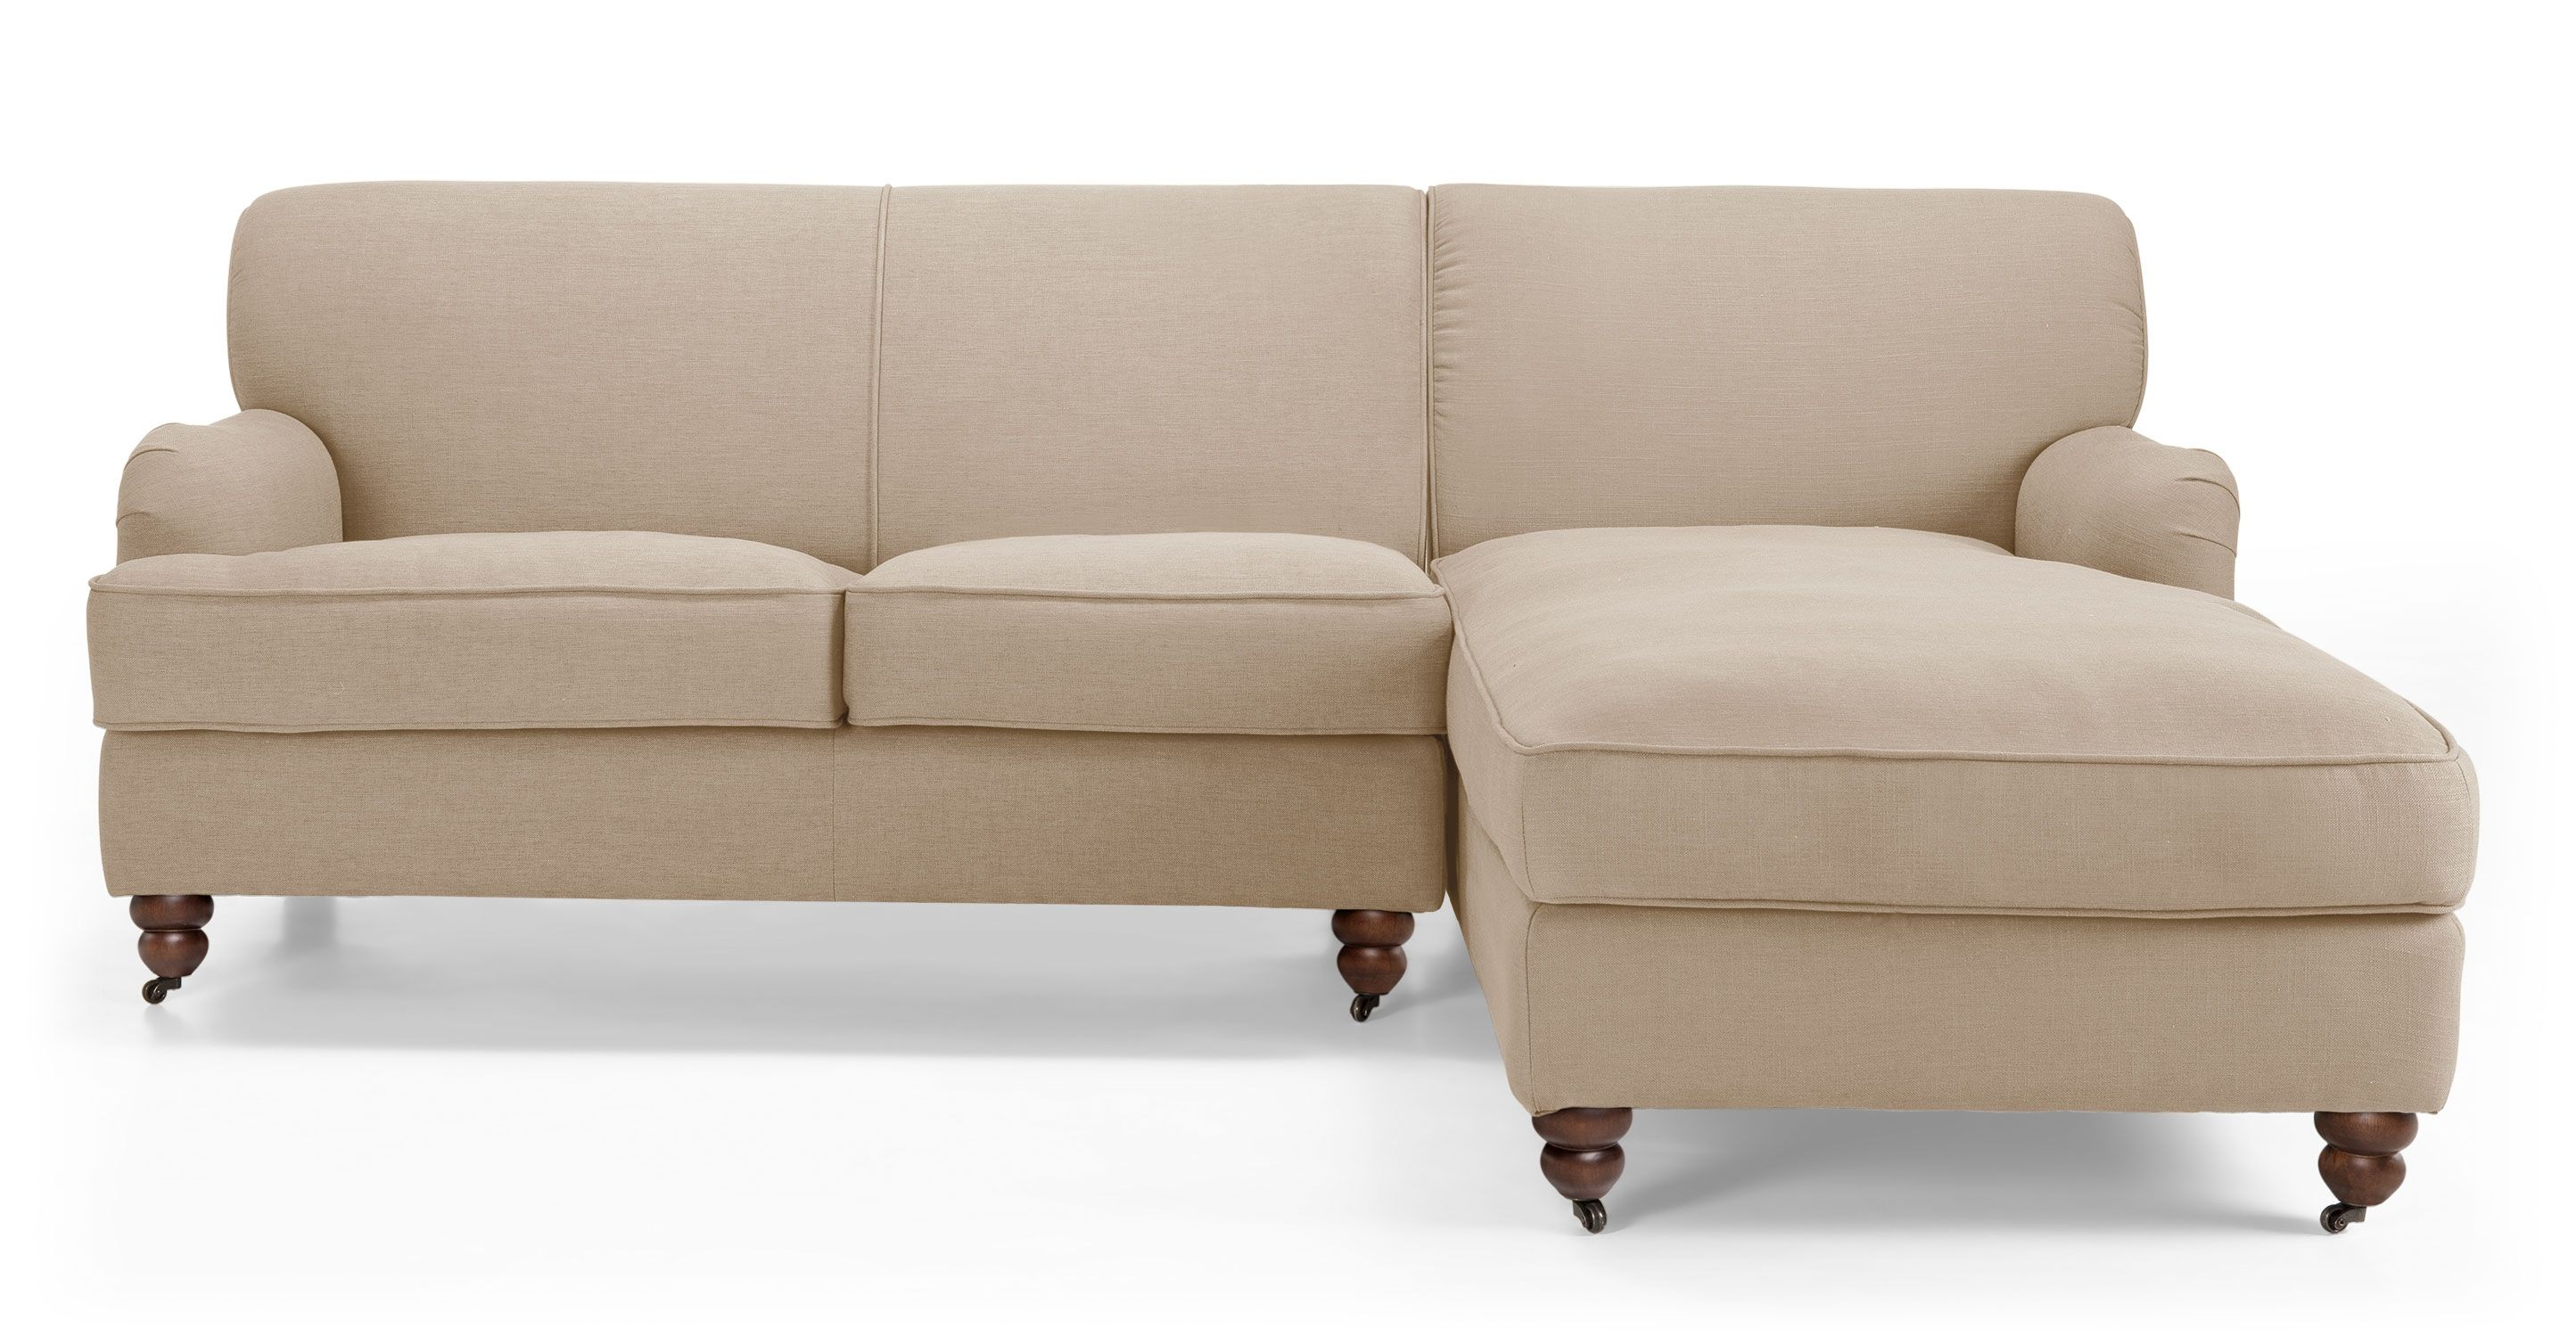 Orson Right Corner Unit, Biscuit Beige from Made.com. Neutral ...